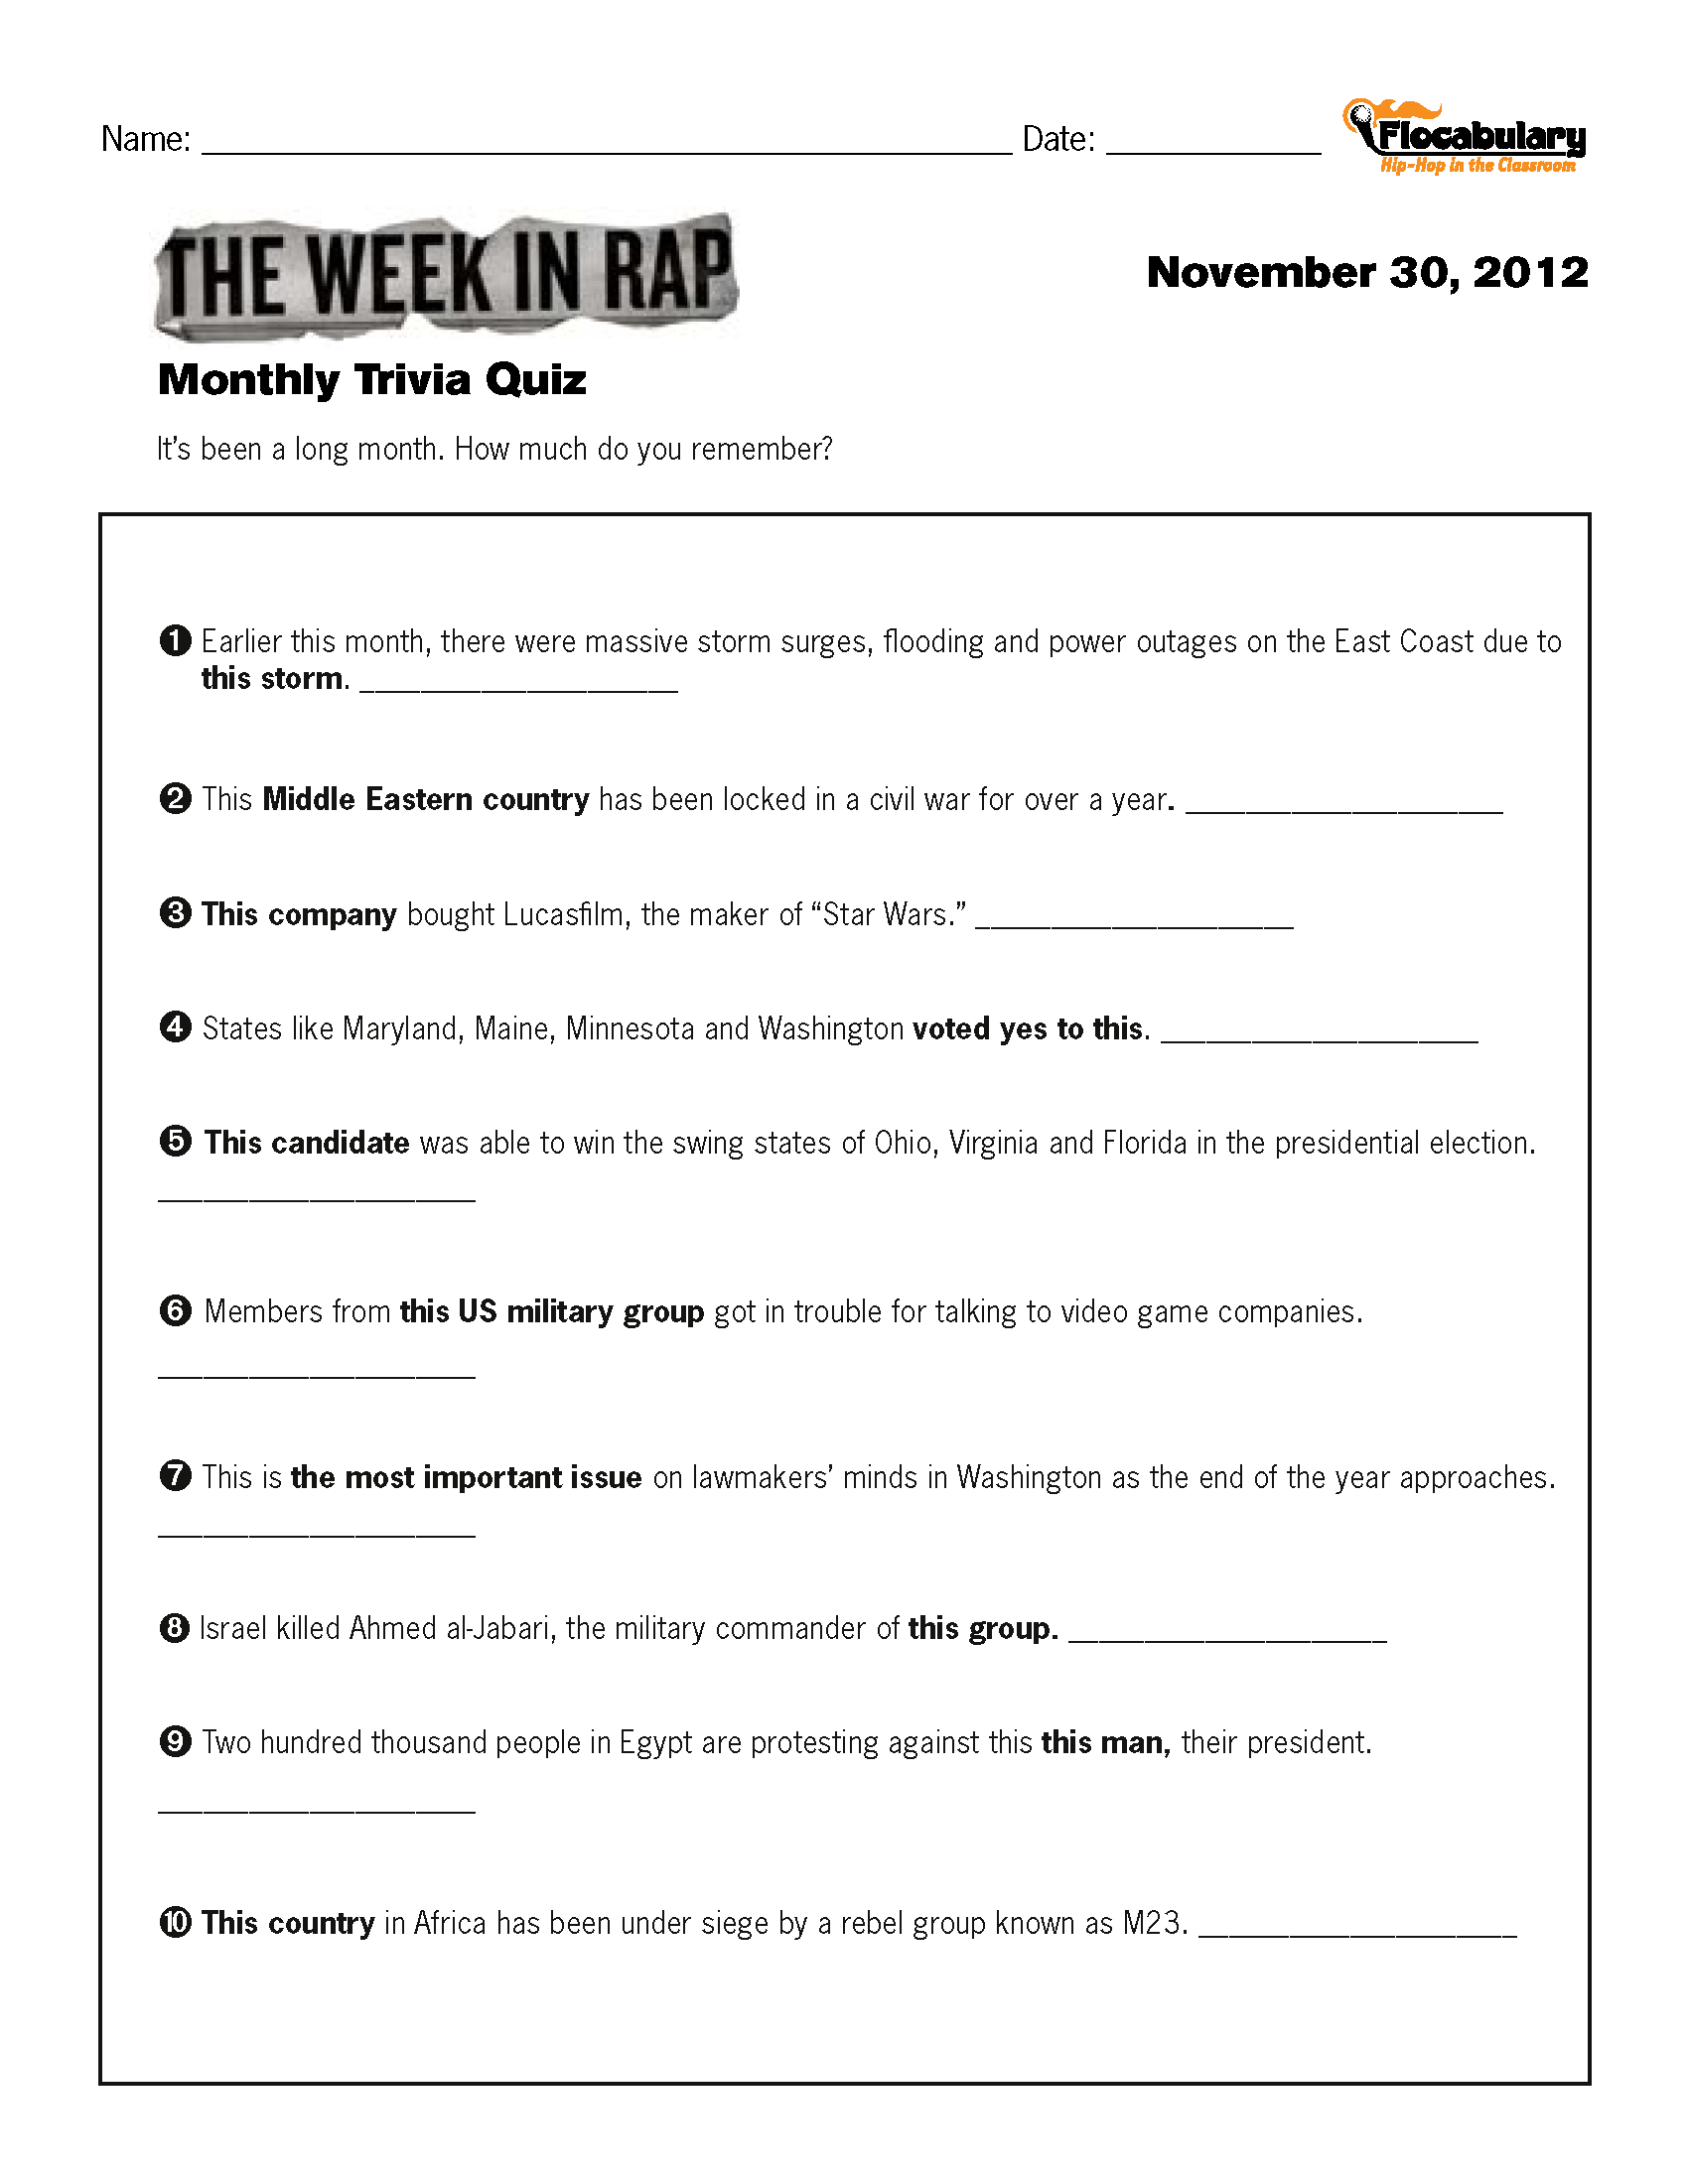 Power to the states worksheet answer key